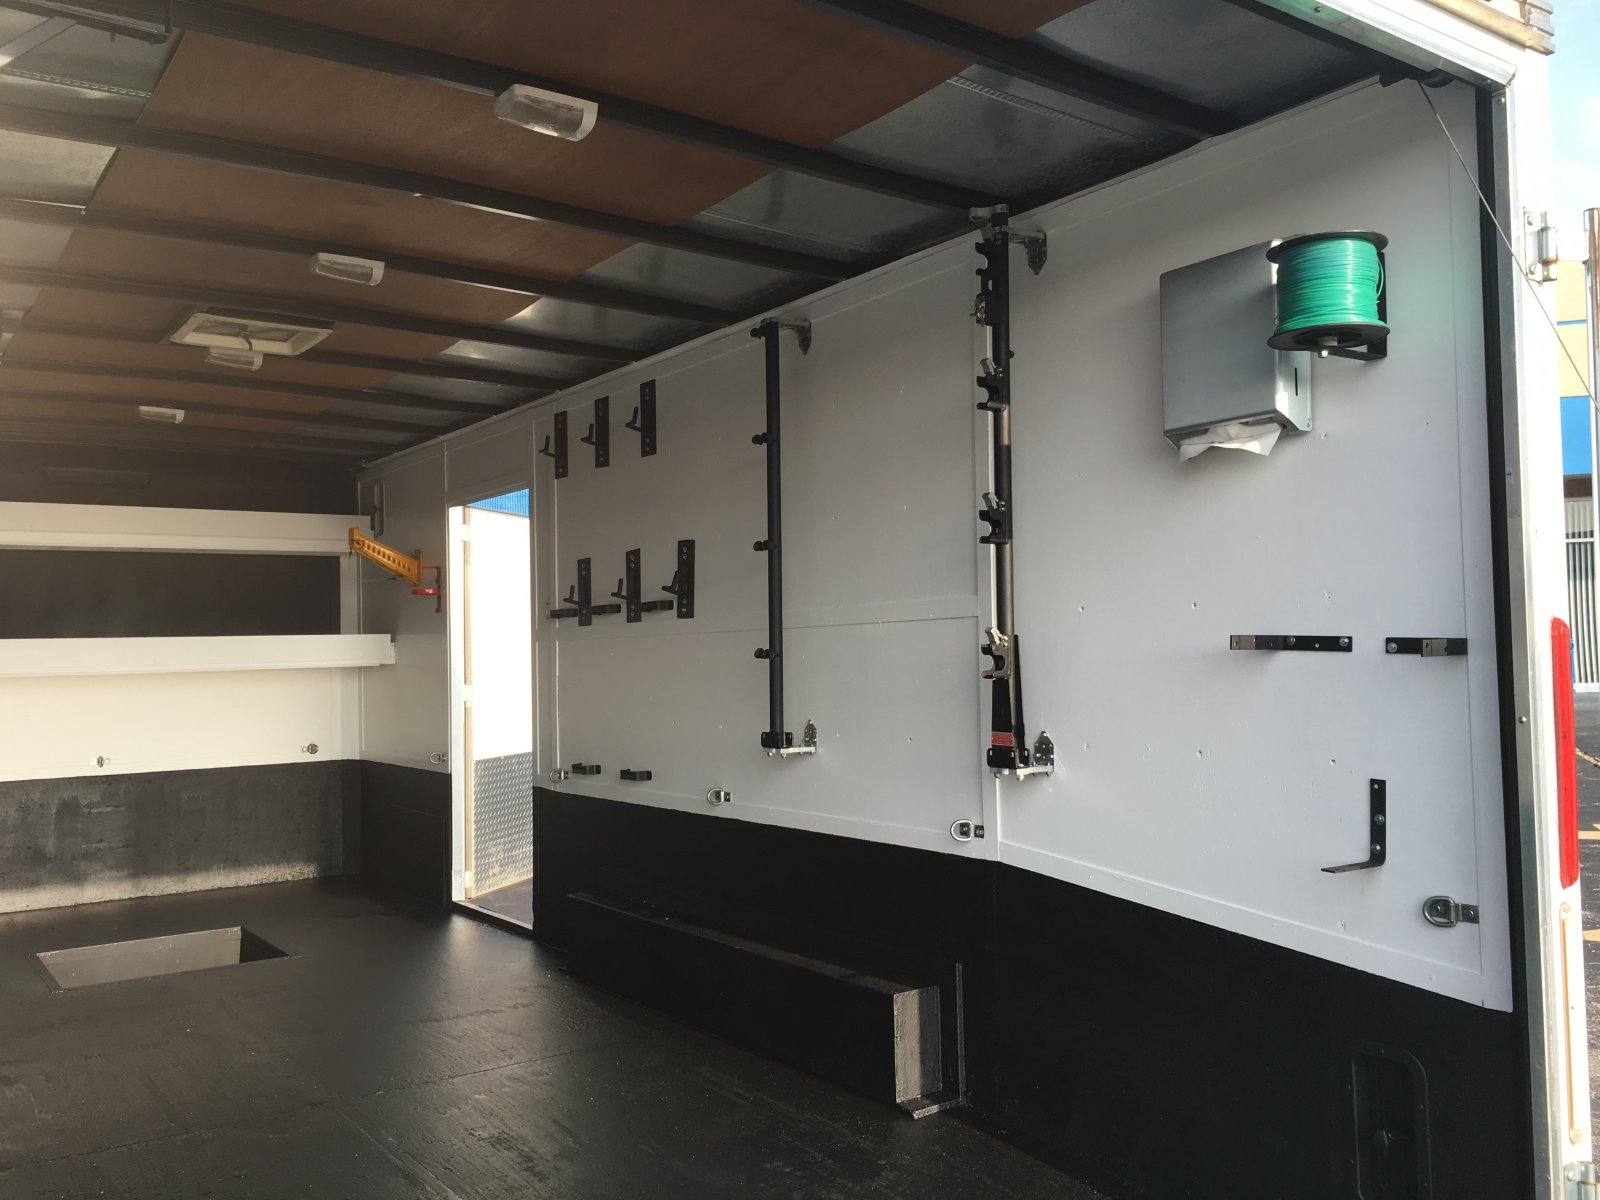 How Do You Attach Racks To The Walls Of An Enclosed Trailer